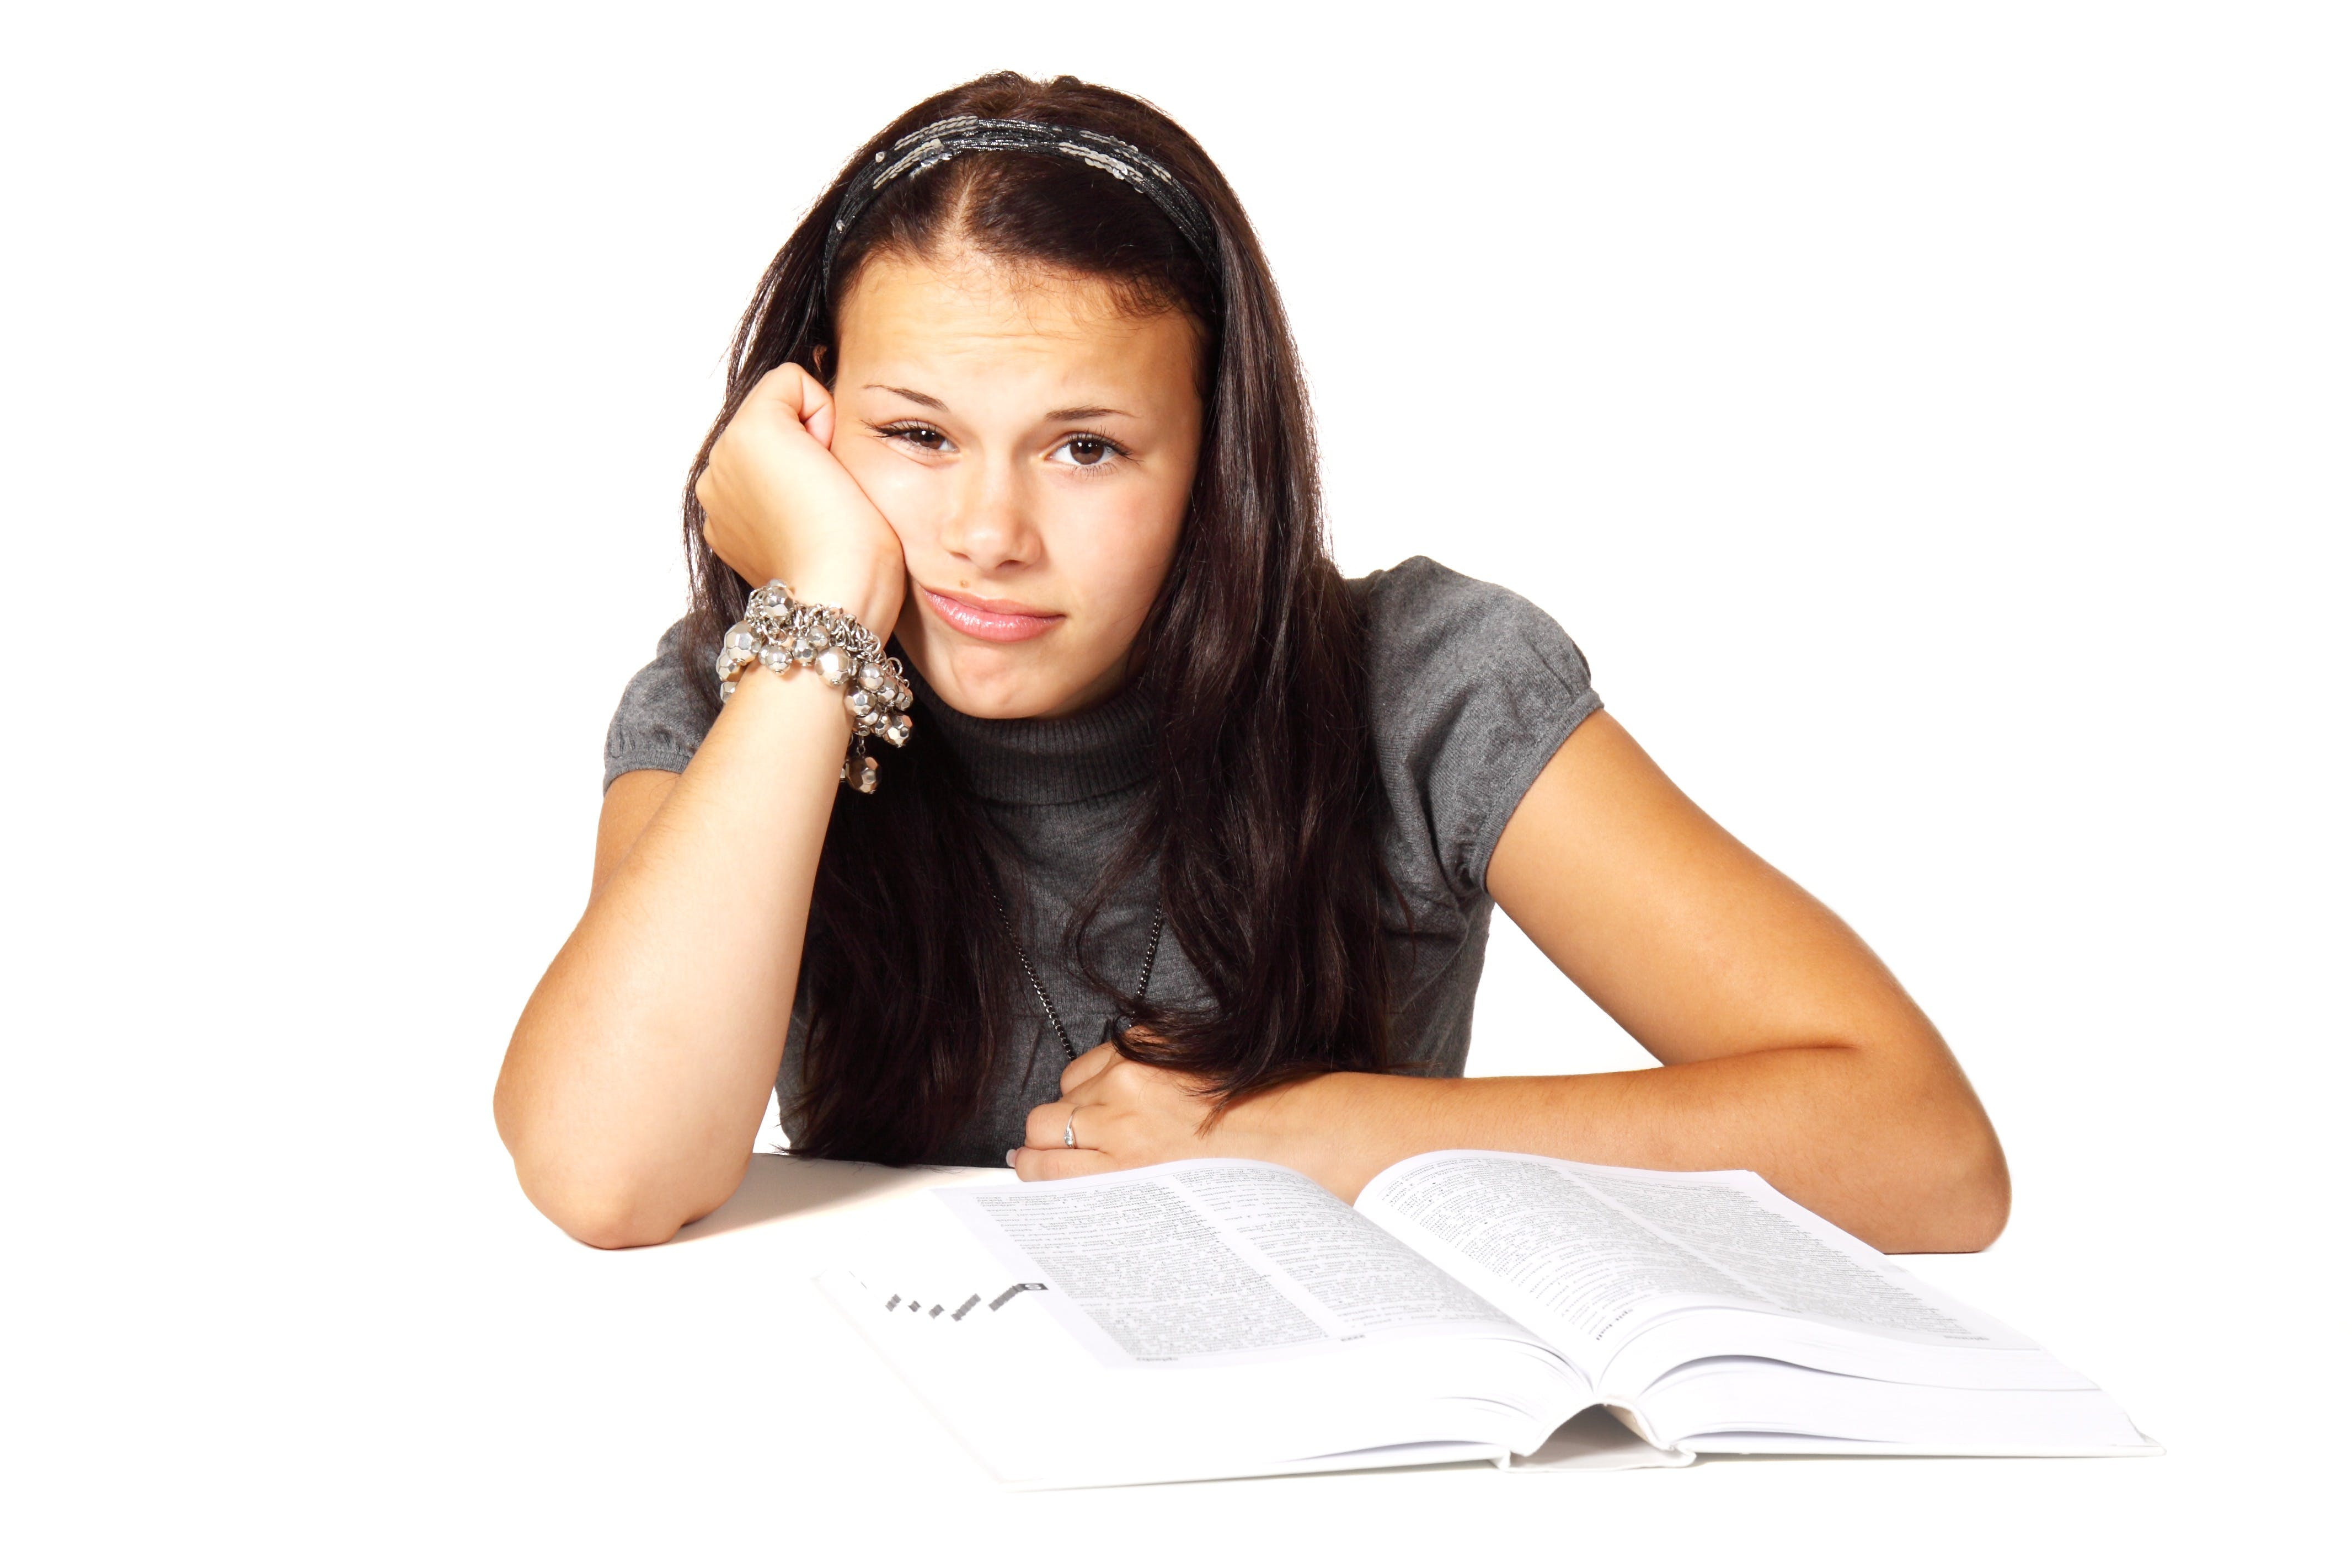 Woman in Black T-shirt Leaning on White Table in Front of White Book